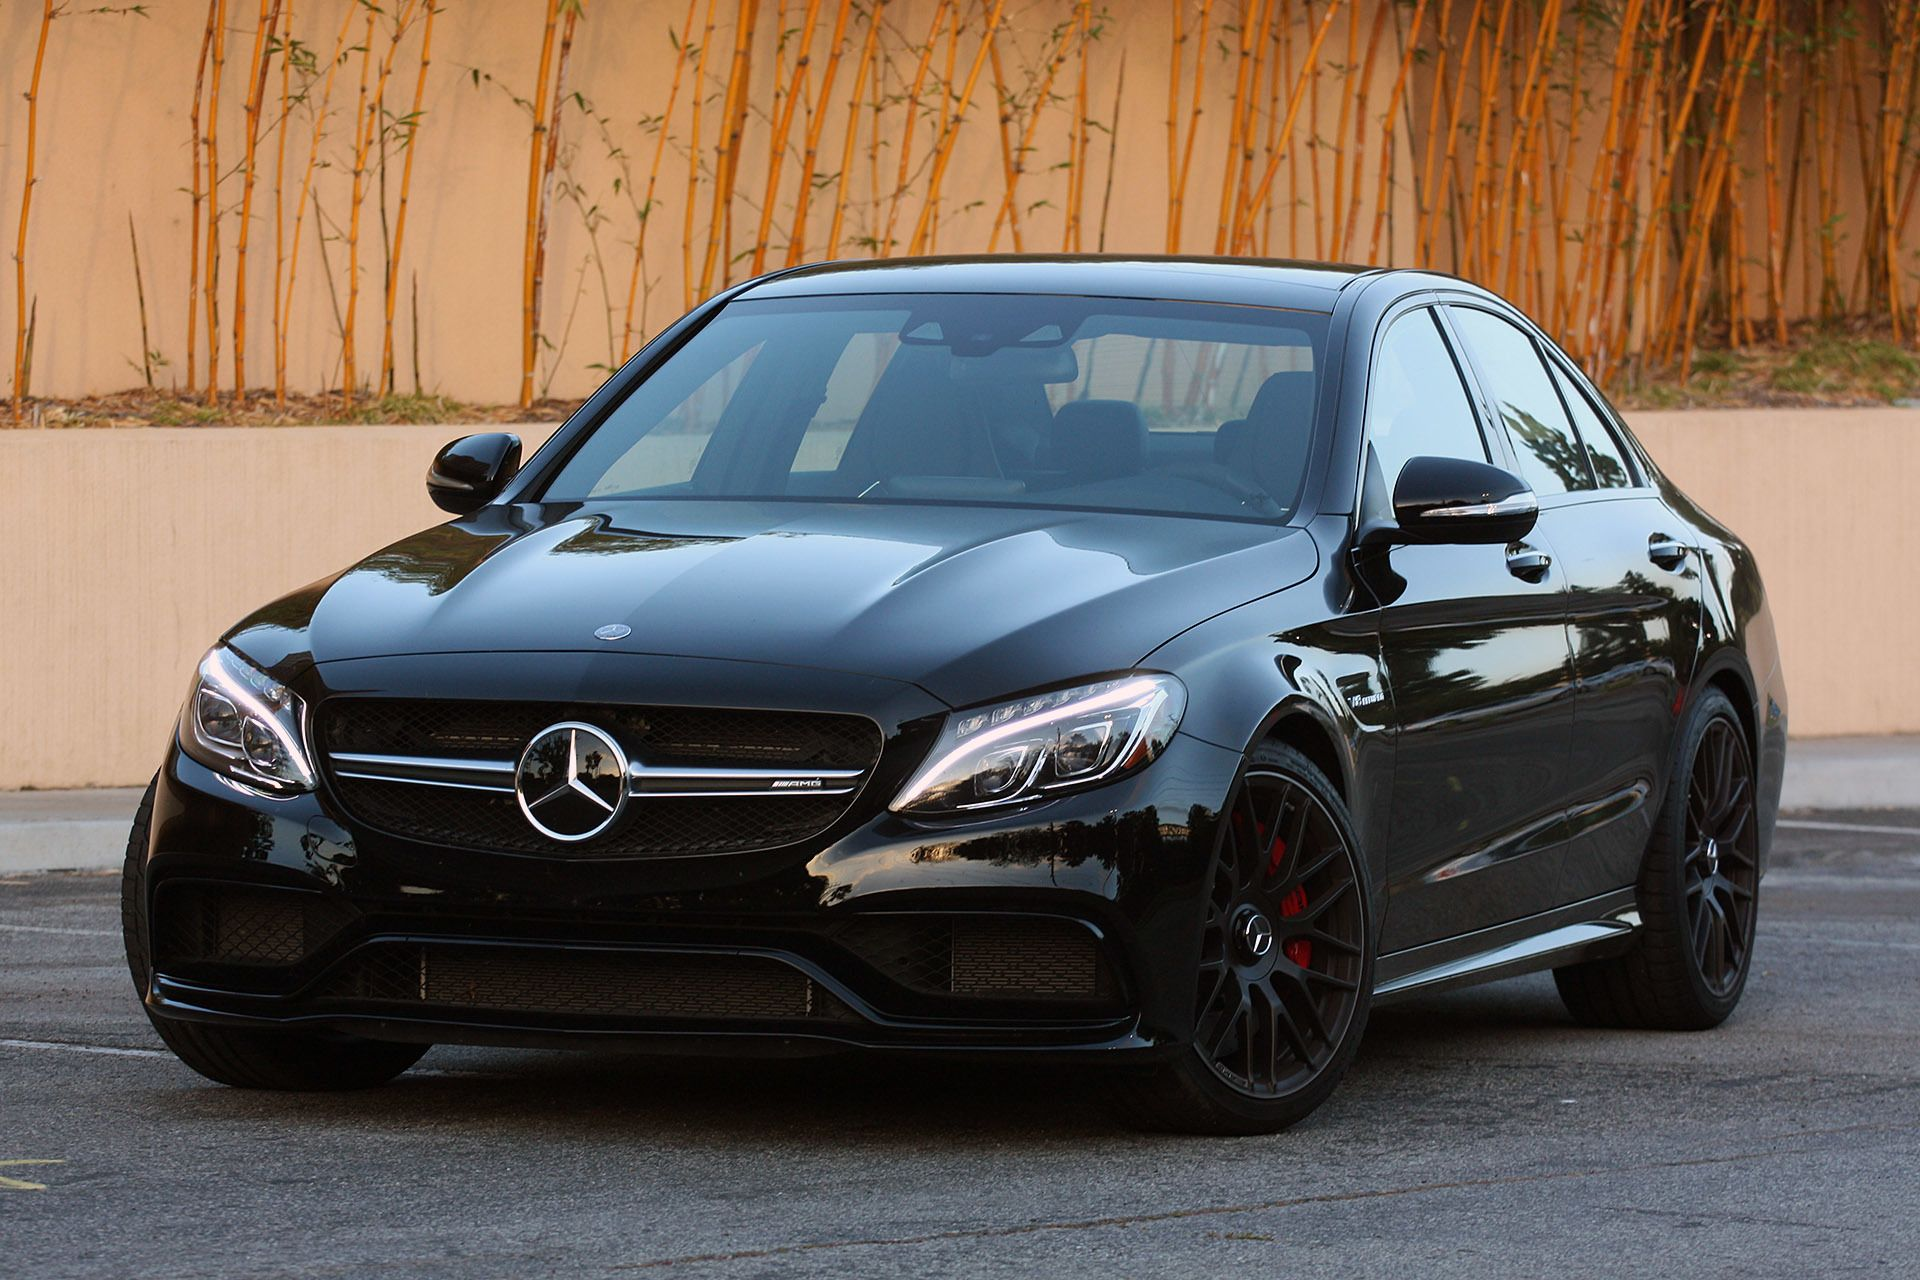 2015 Mercedes-AMG C63 S Review | Cars | Mercedes benz c63 ...